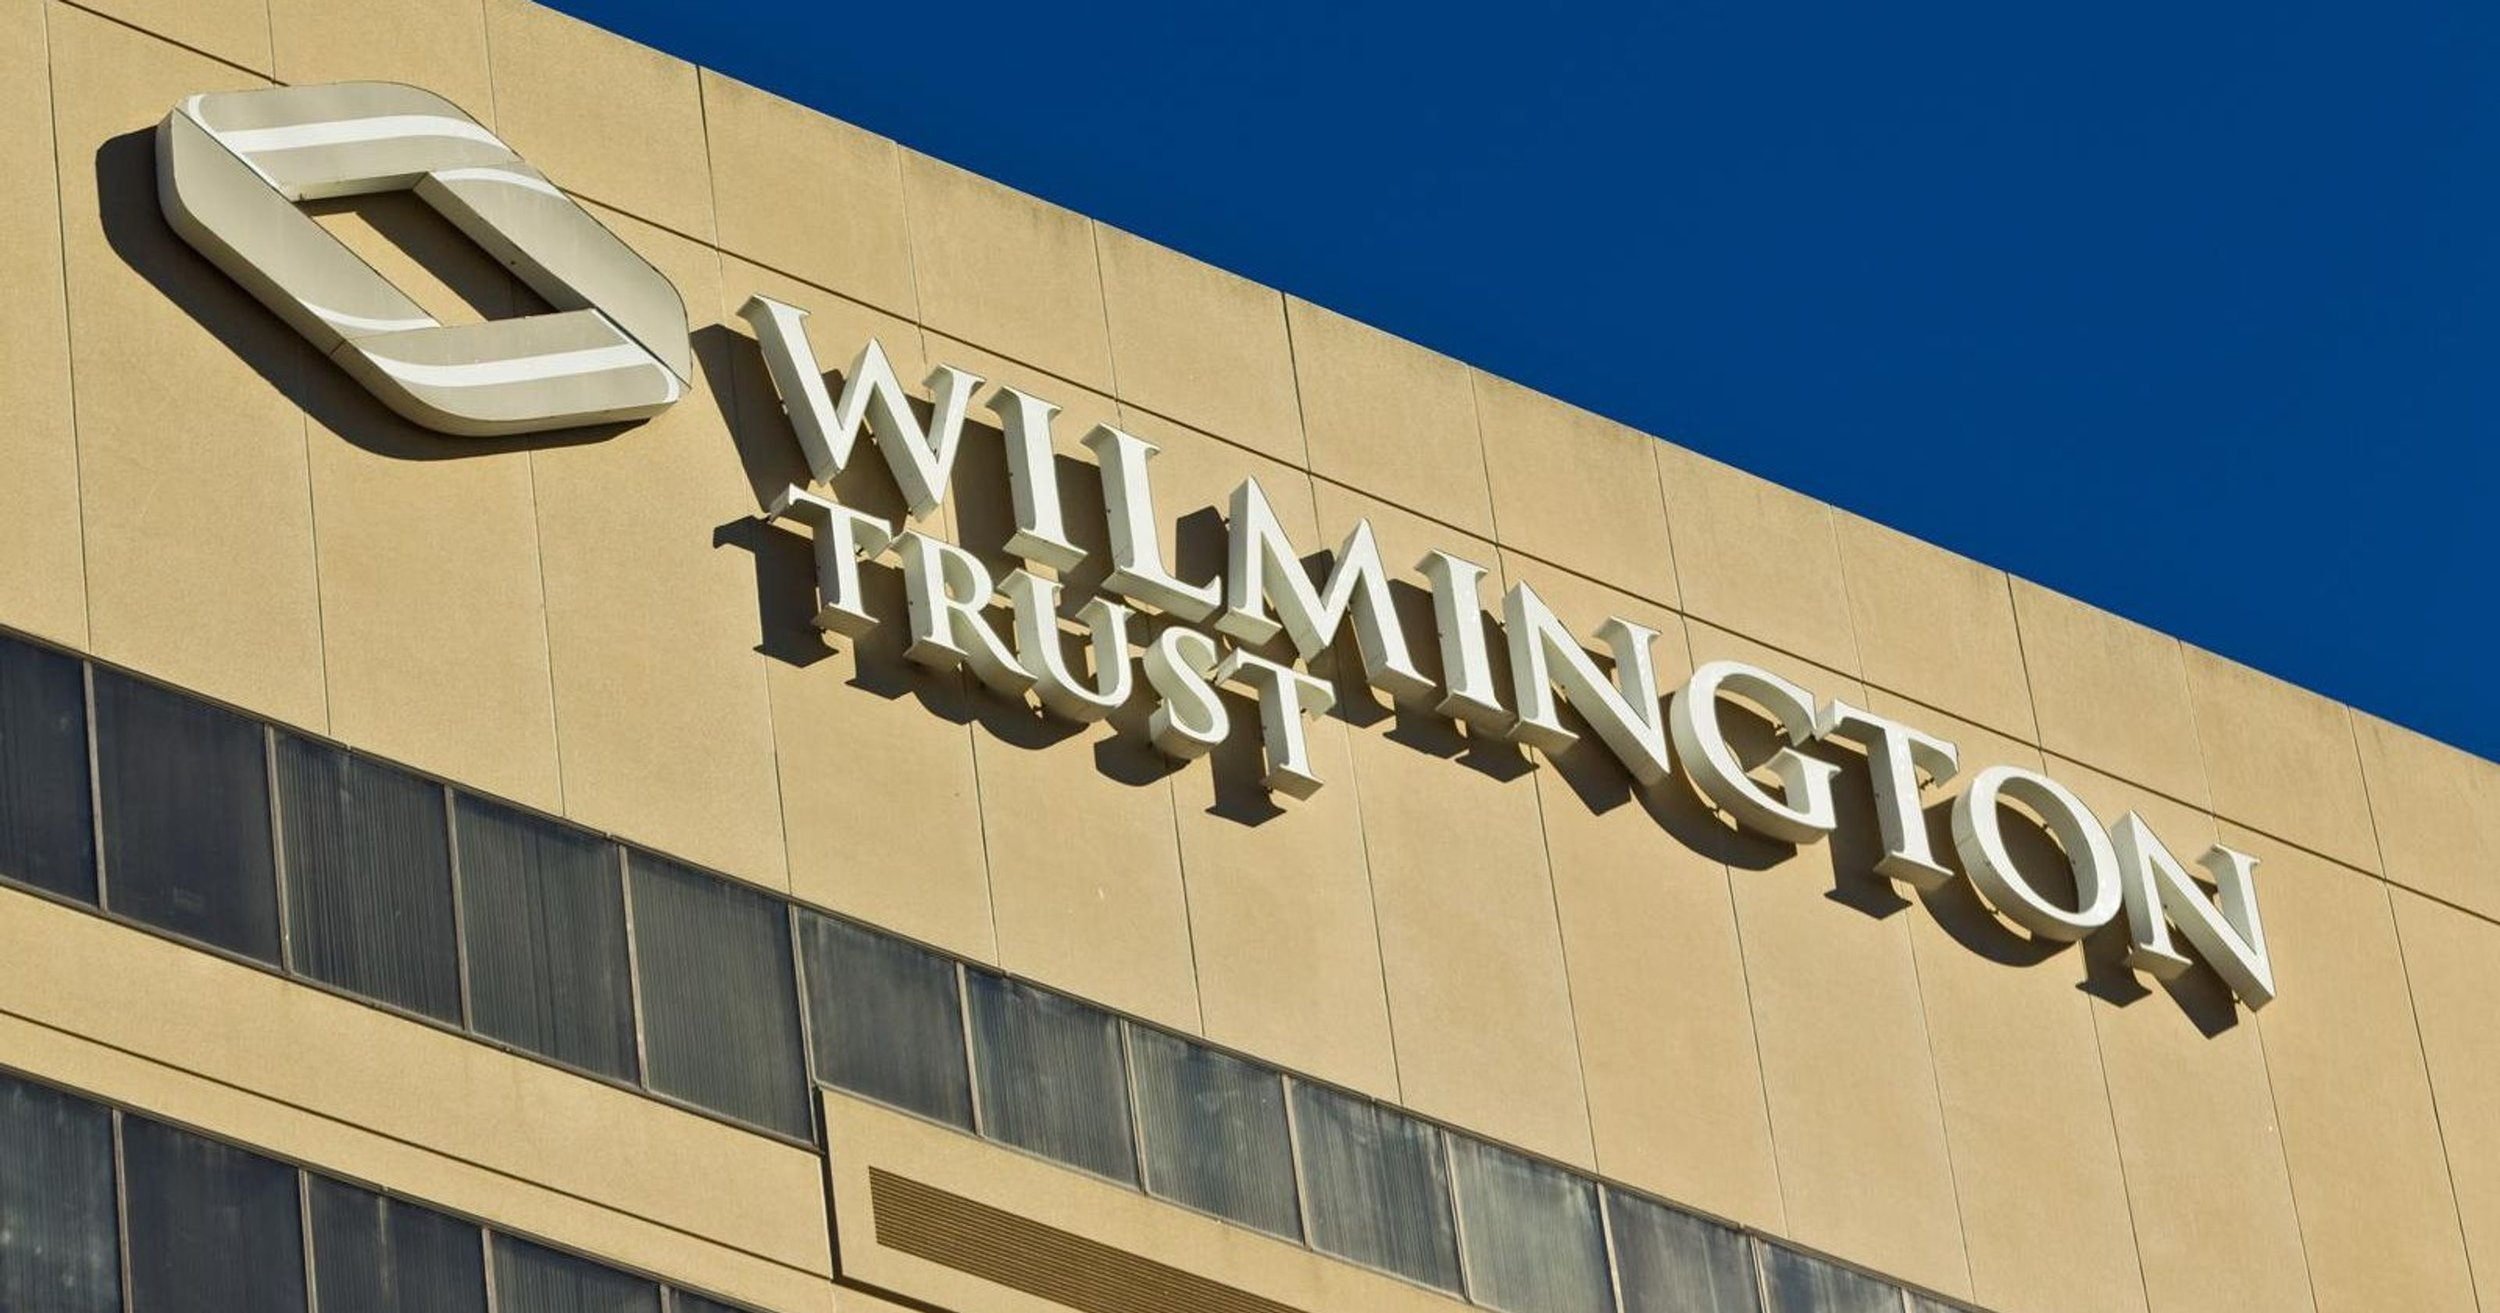 Wilmington Trust  is one of the top 10 largest US institutions by fiduciary assets. [1]  Wilmington Trust is currently a provider of international corporate and institutional services, investment management, and private banking. The firm was founded on July 8, 1903, as a banking, trust, and safe deposit company by  DuPont  president  T. Coleman du Pont . In 2010, it became a subsidiary of  M&T Bank .